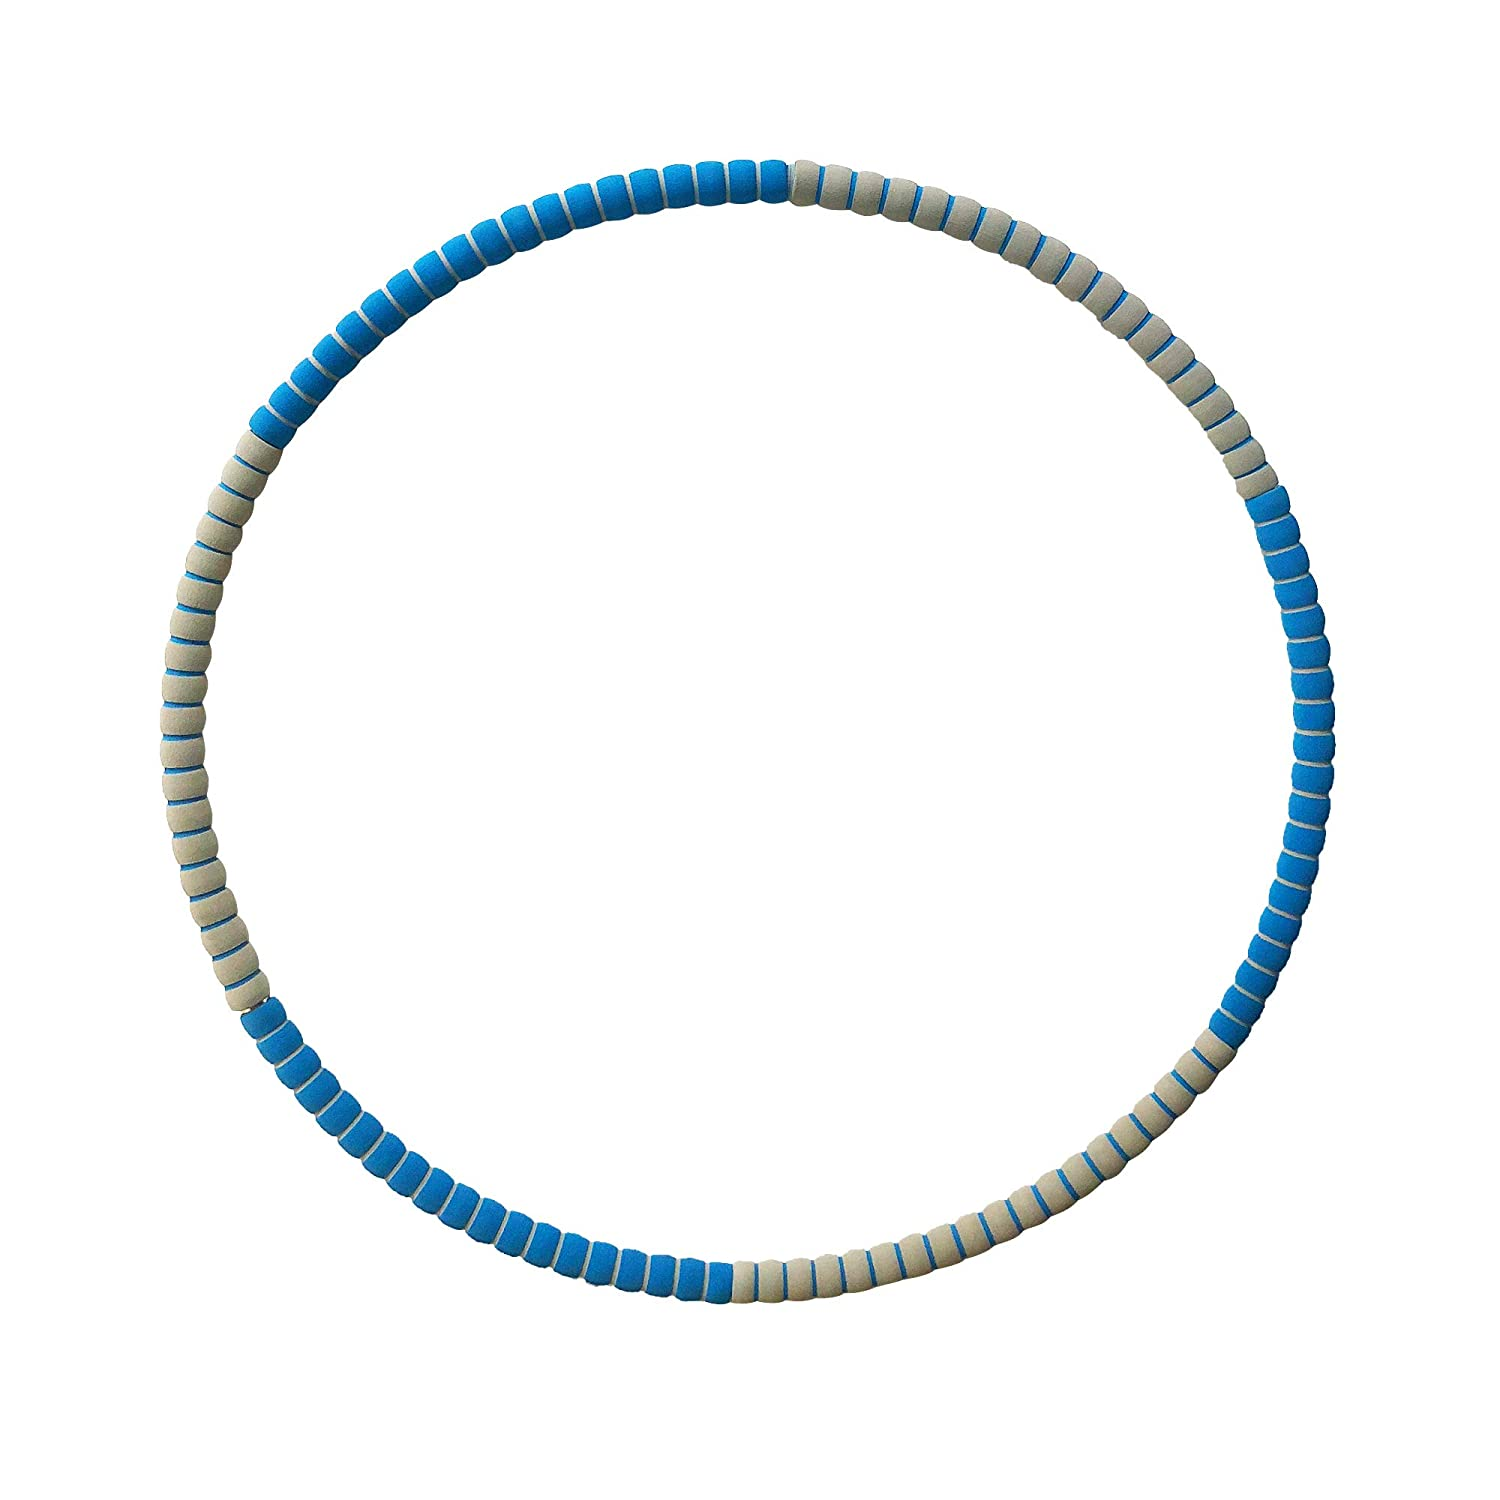 CERRXIAN Detachable Hula Hoop Easy to Install Can be Carried Around